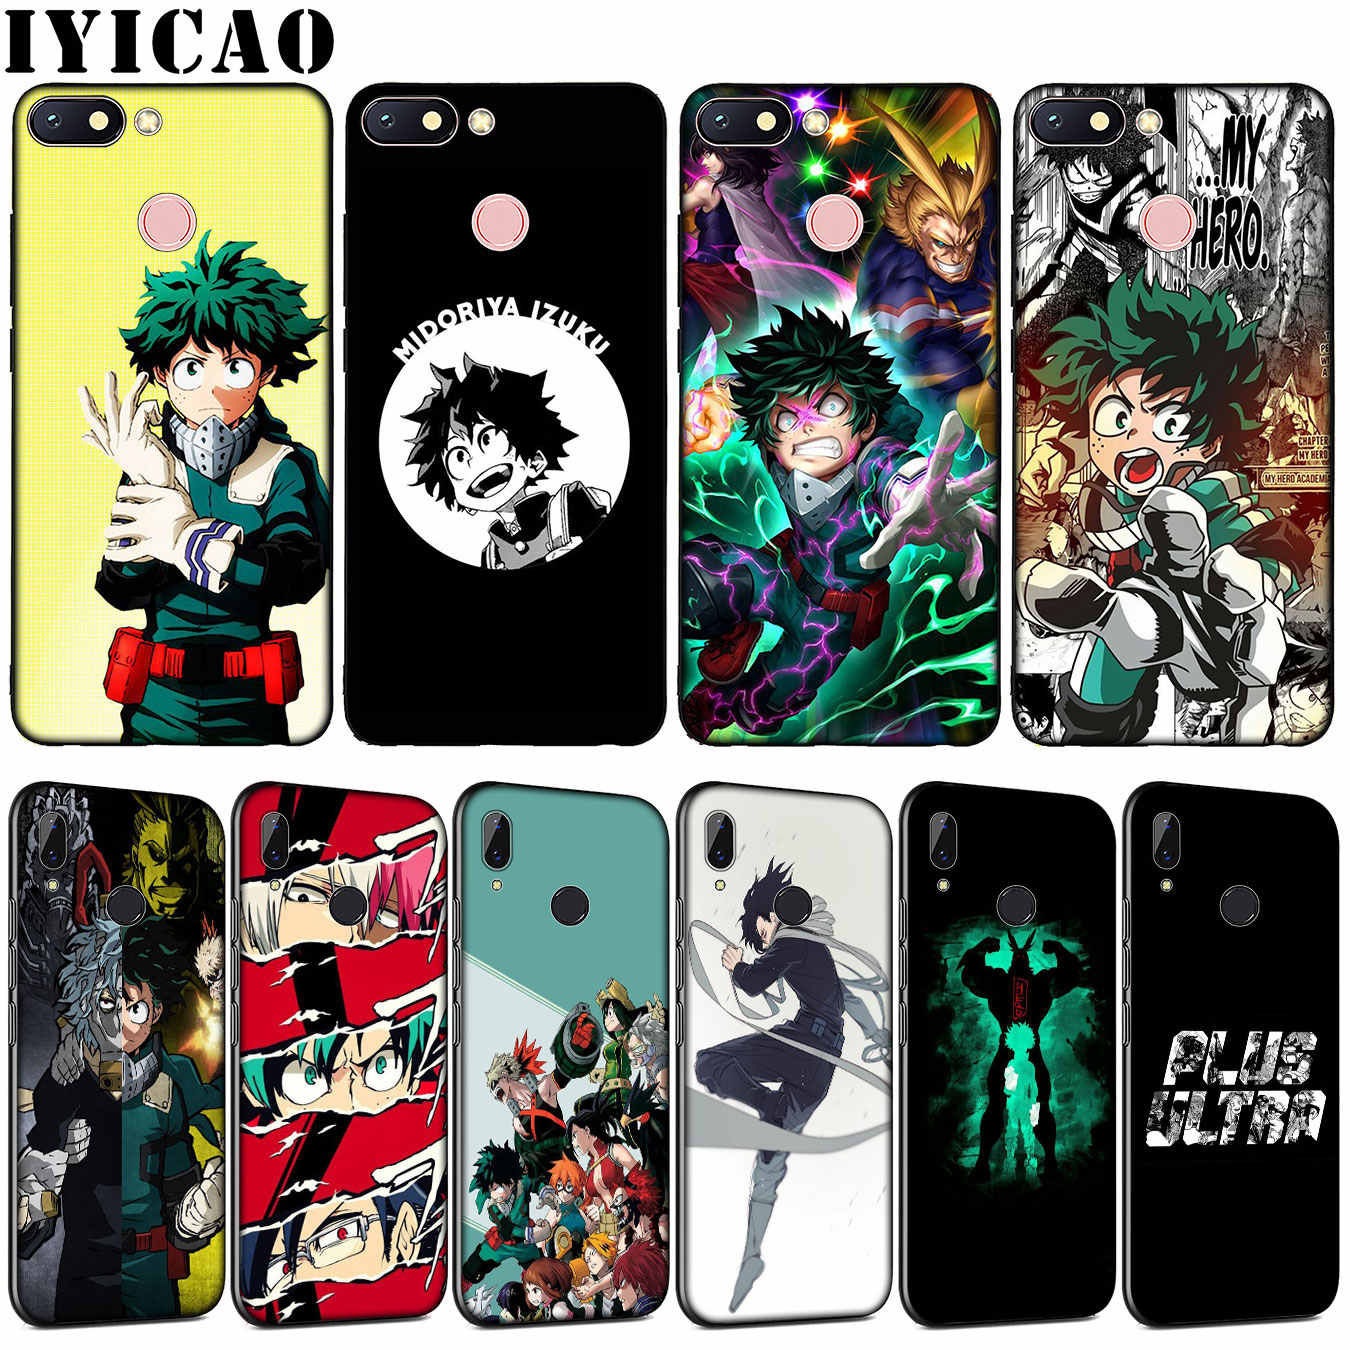 Iyicao Mijn Hero Academy Anime Soft Tpu Siliconen Telefoon Case Voor Xiaomi Redmi Note 8 8A 8T 7 7A 6 6A 5 5A Gaan S2 K30 K20 Pro Cover